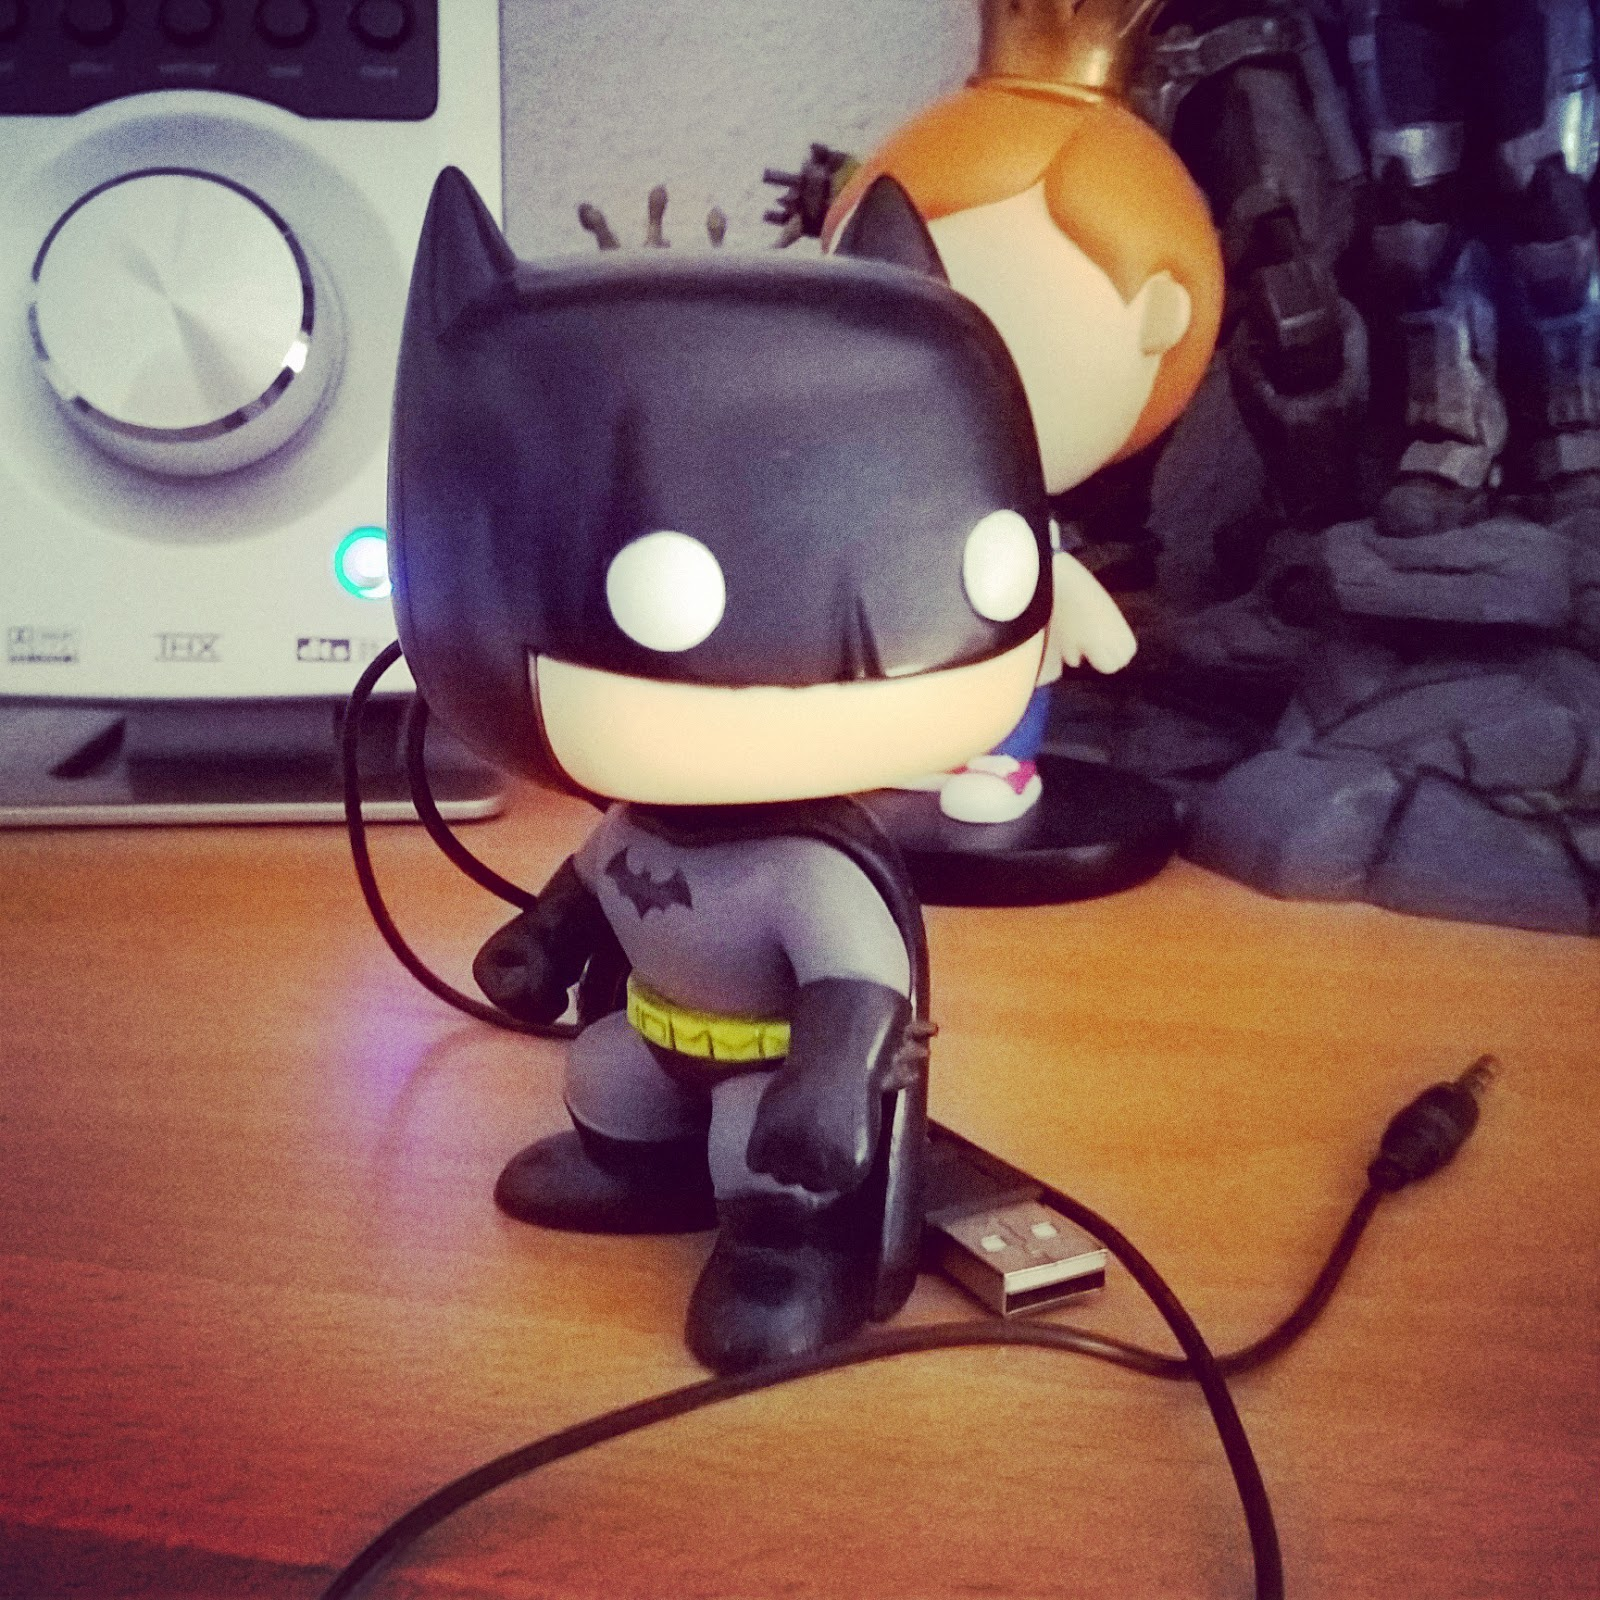 Altavoz Batman Funko Pop!